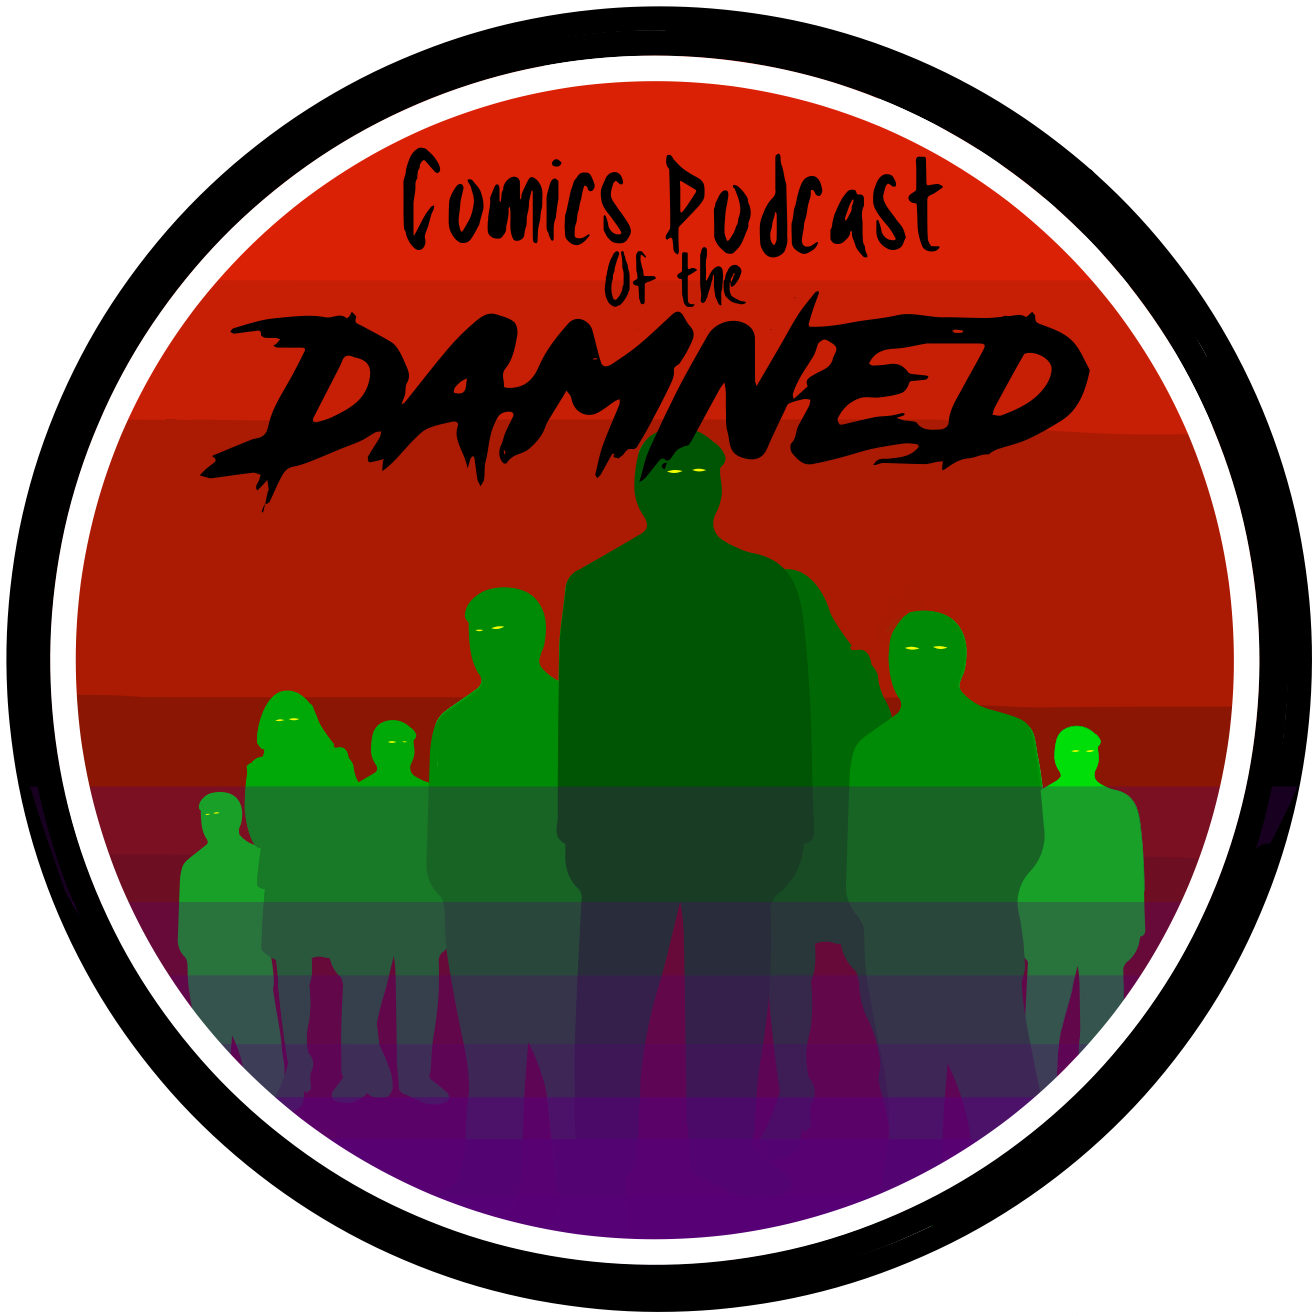 Comics Podcast Of The Damned! logo